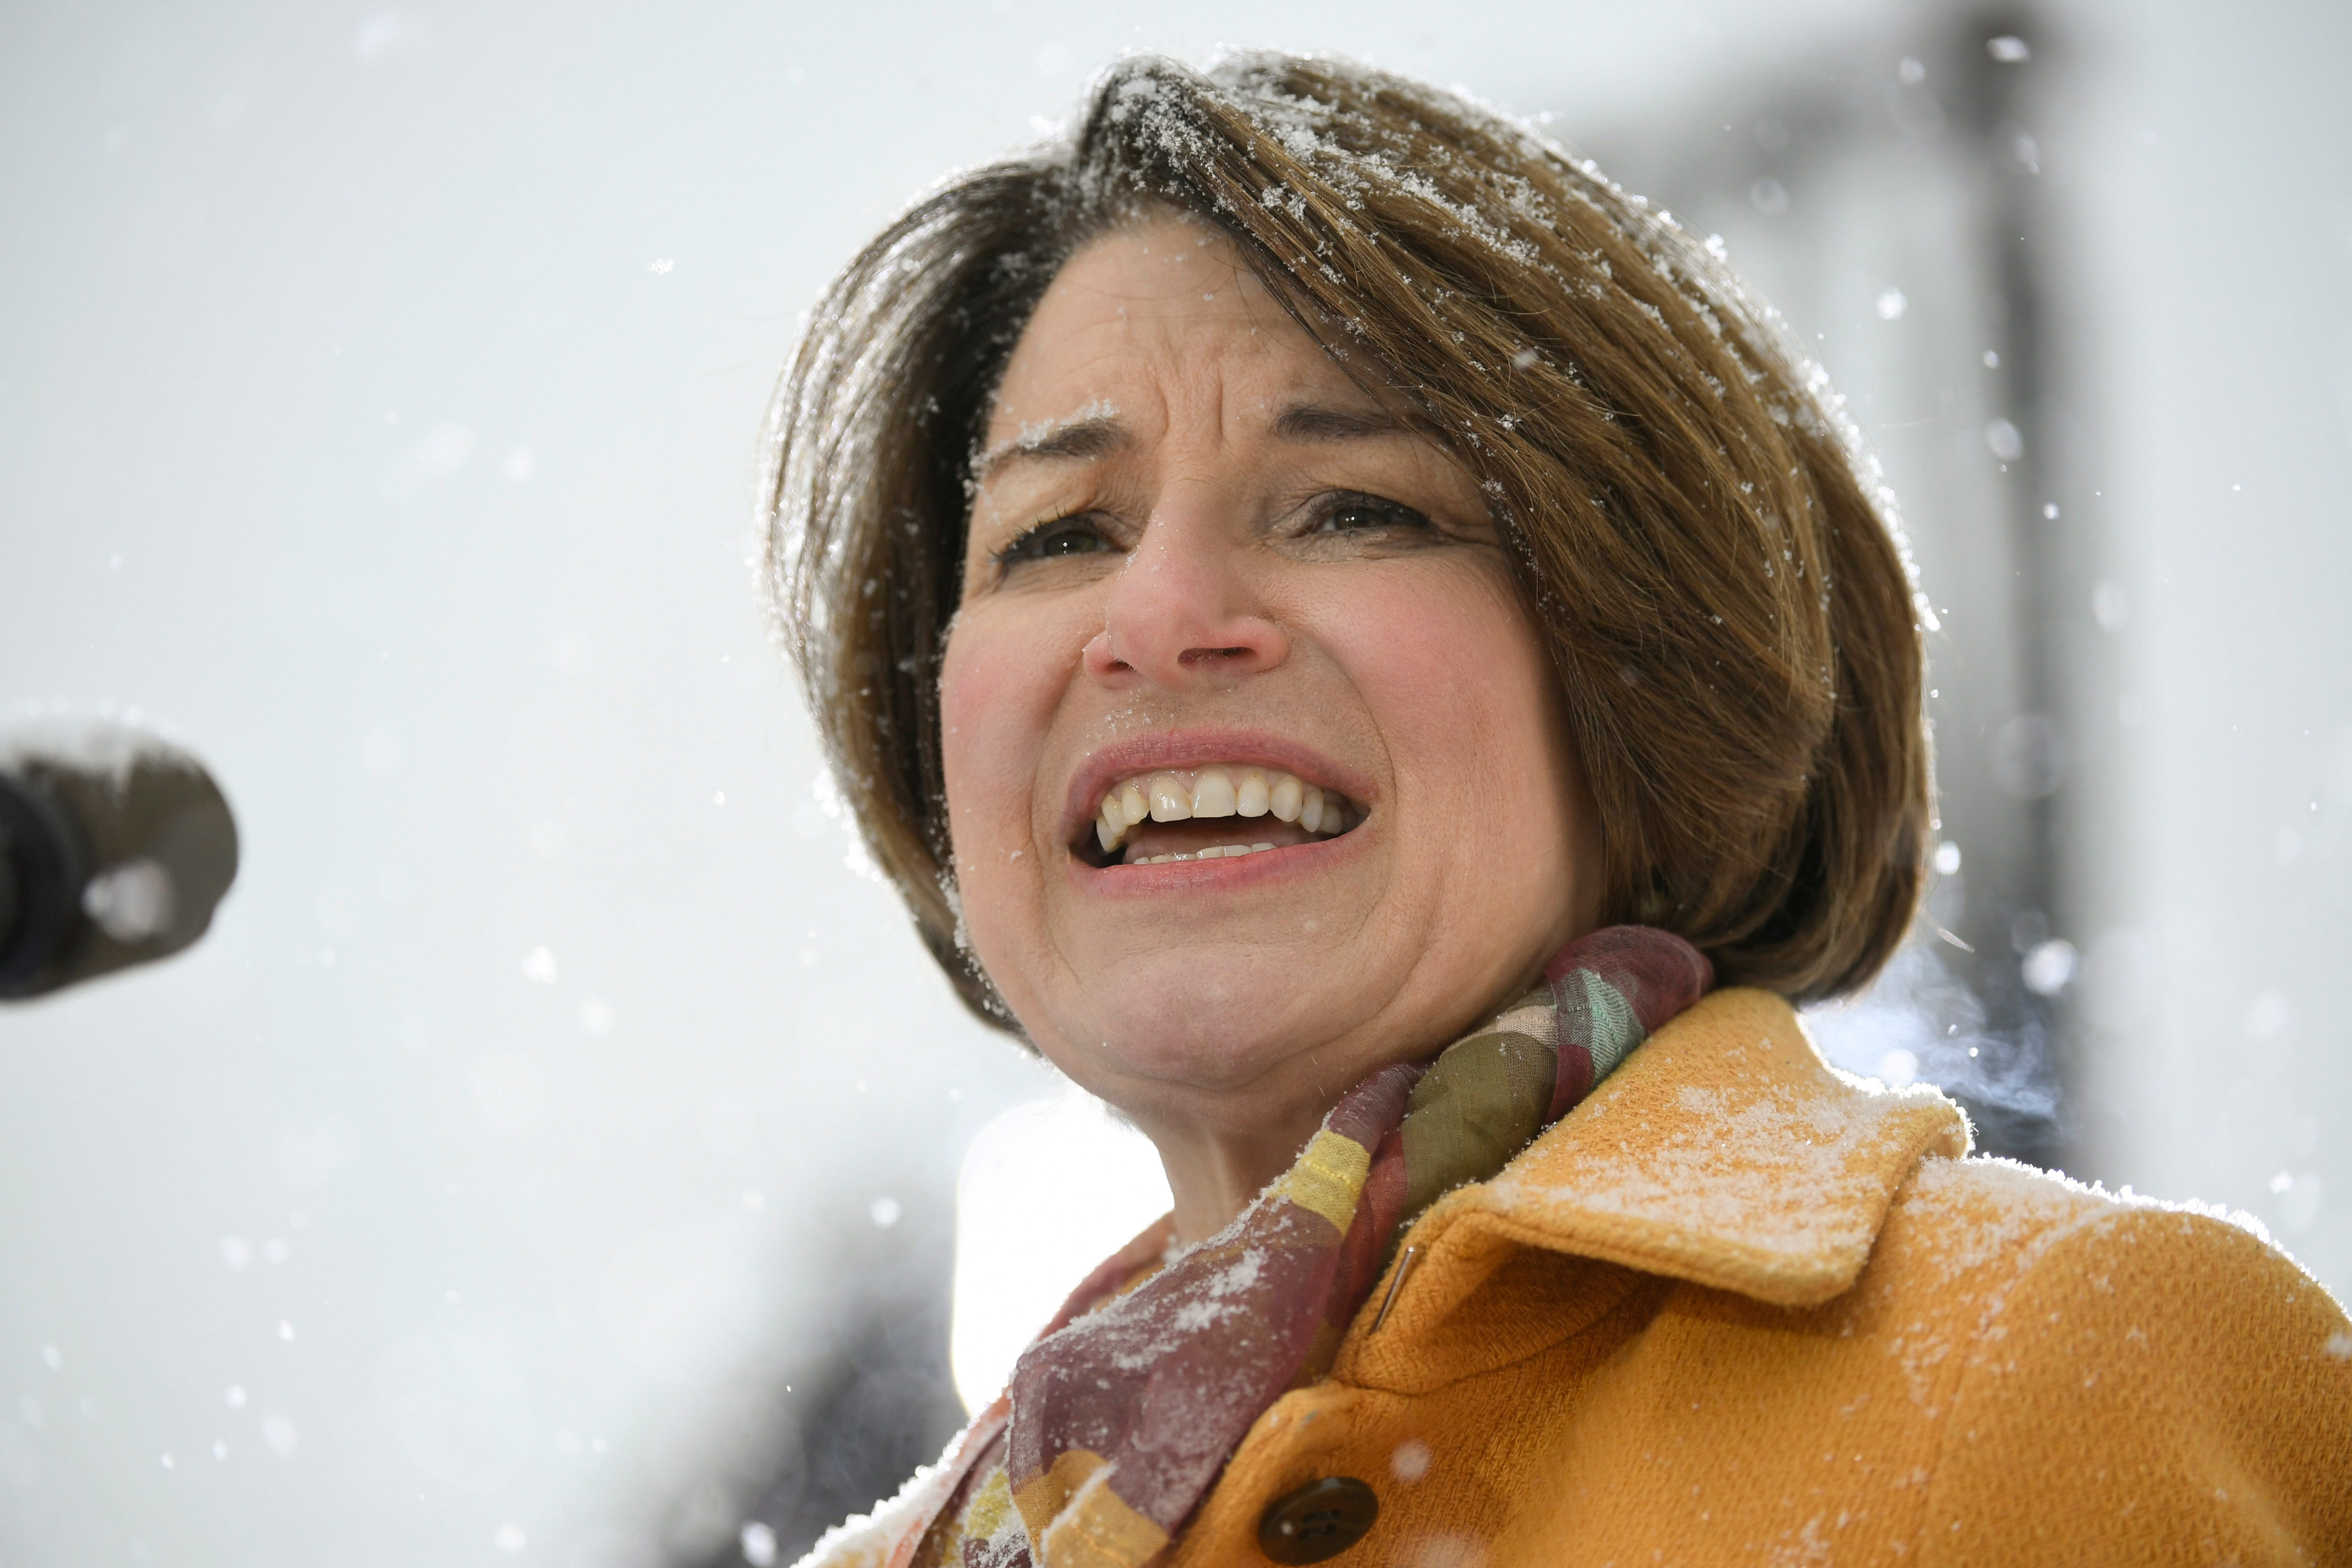 Democratic Senator of Minnesota Amy Klobuchar announces that she is running for President of the United States on Feb. 10, 2019.